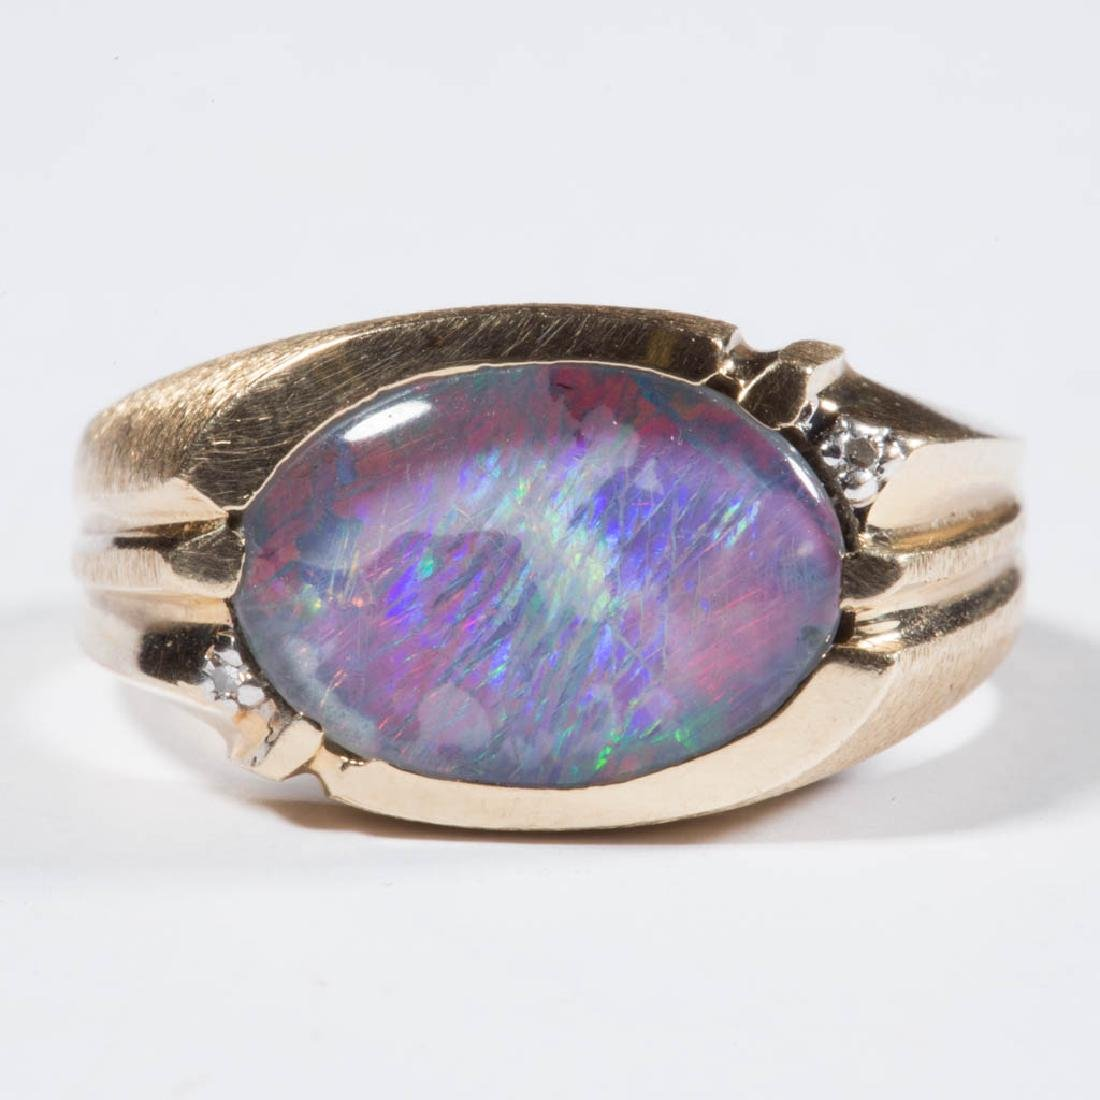 VINTAGE 14K GOLD AND OPAL MAN'S RING